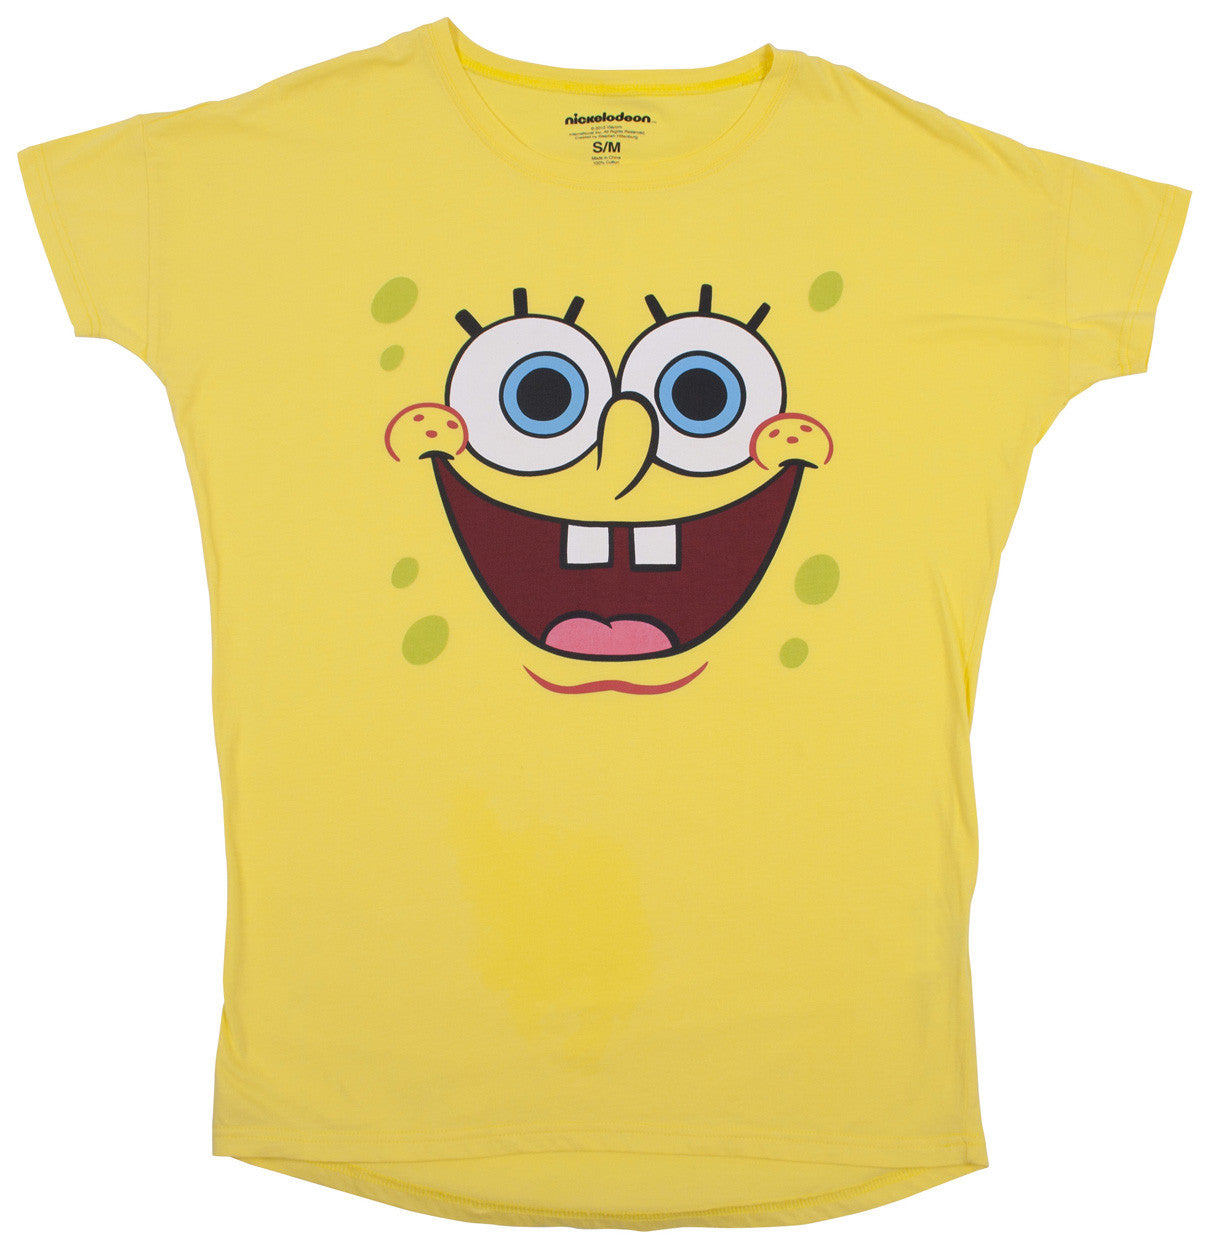 SpongeBob SquarePants Big Face Night shirt